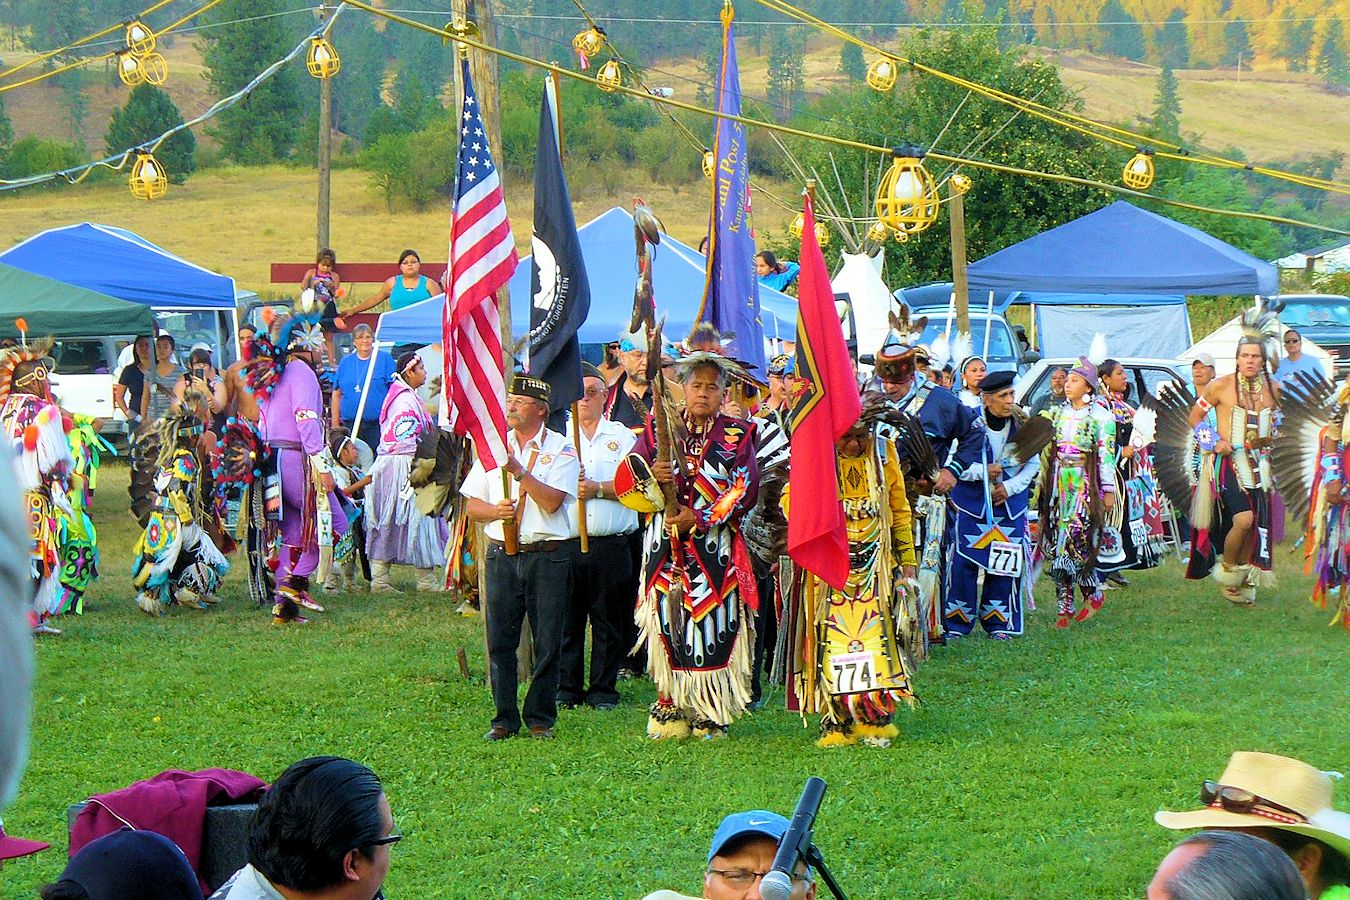 Chief Lookingglass Pow Wow - Nez Perce Tribe - Wa-A'Yas Community Center